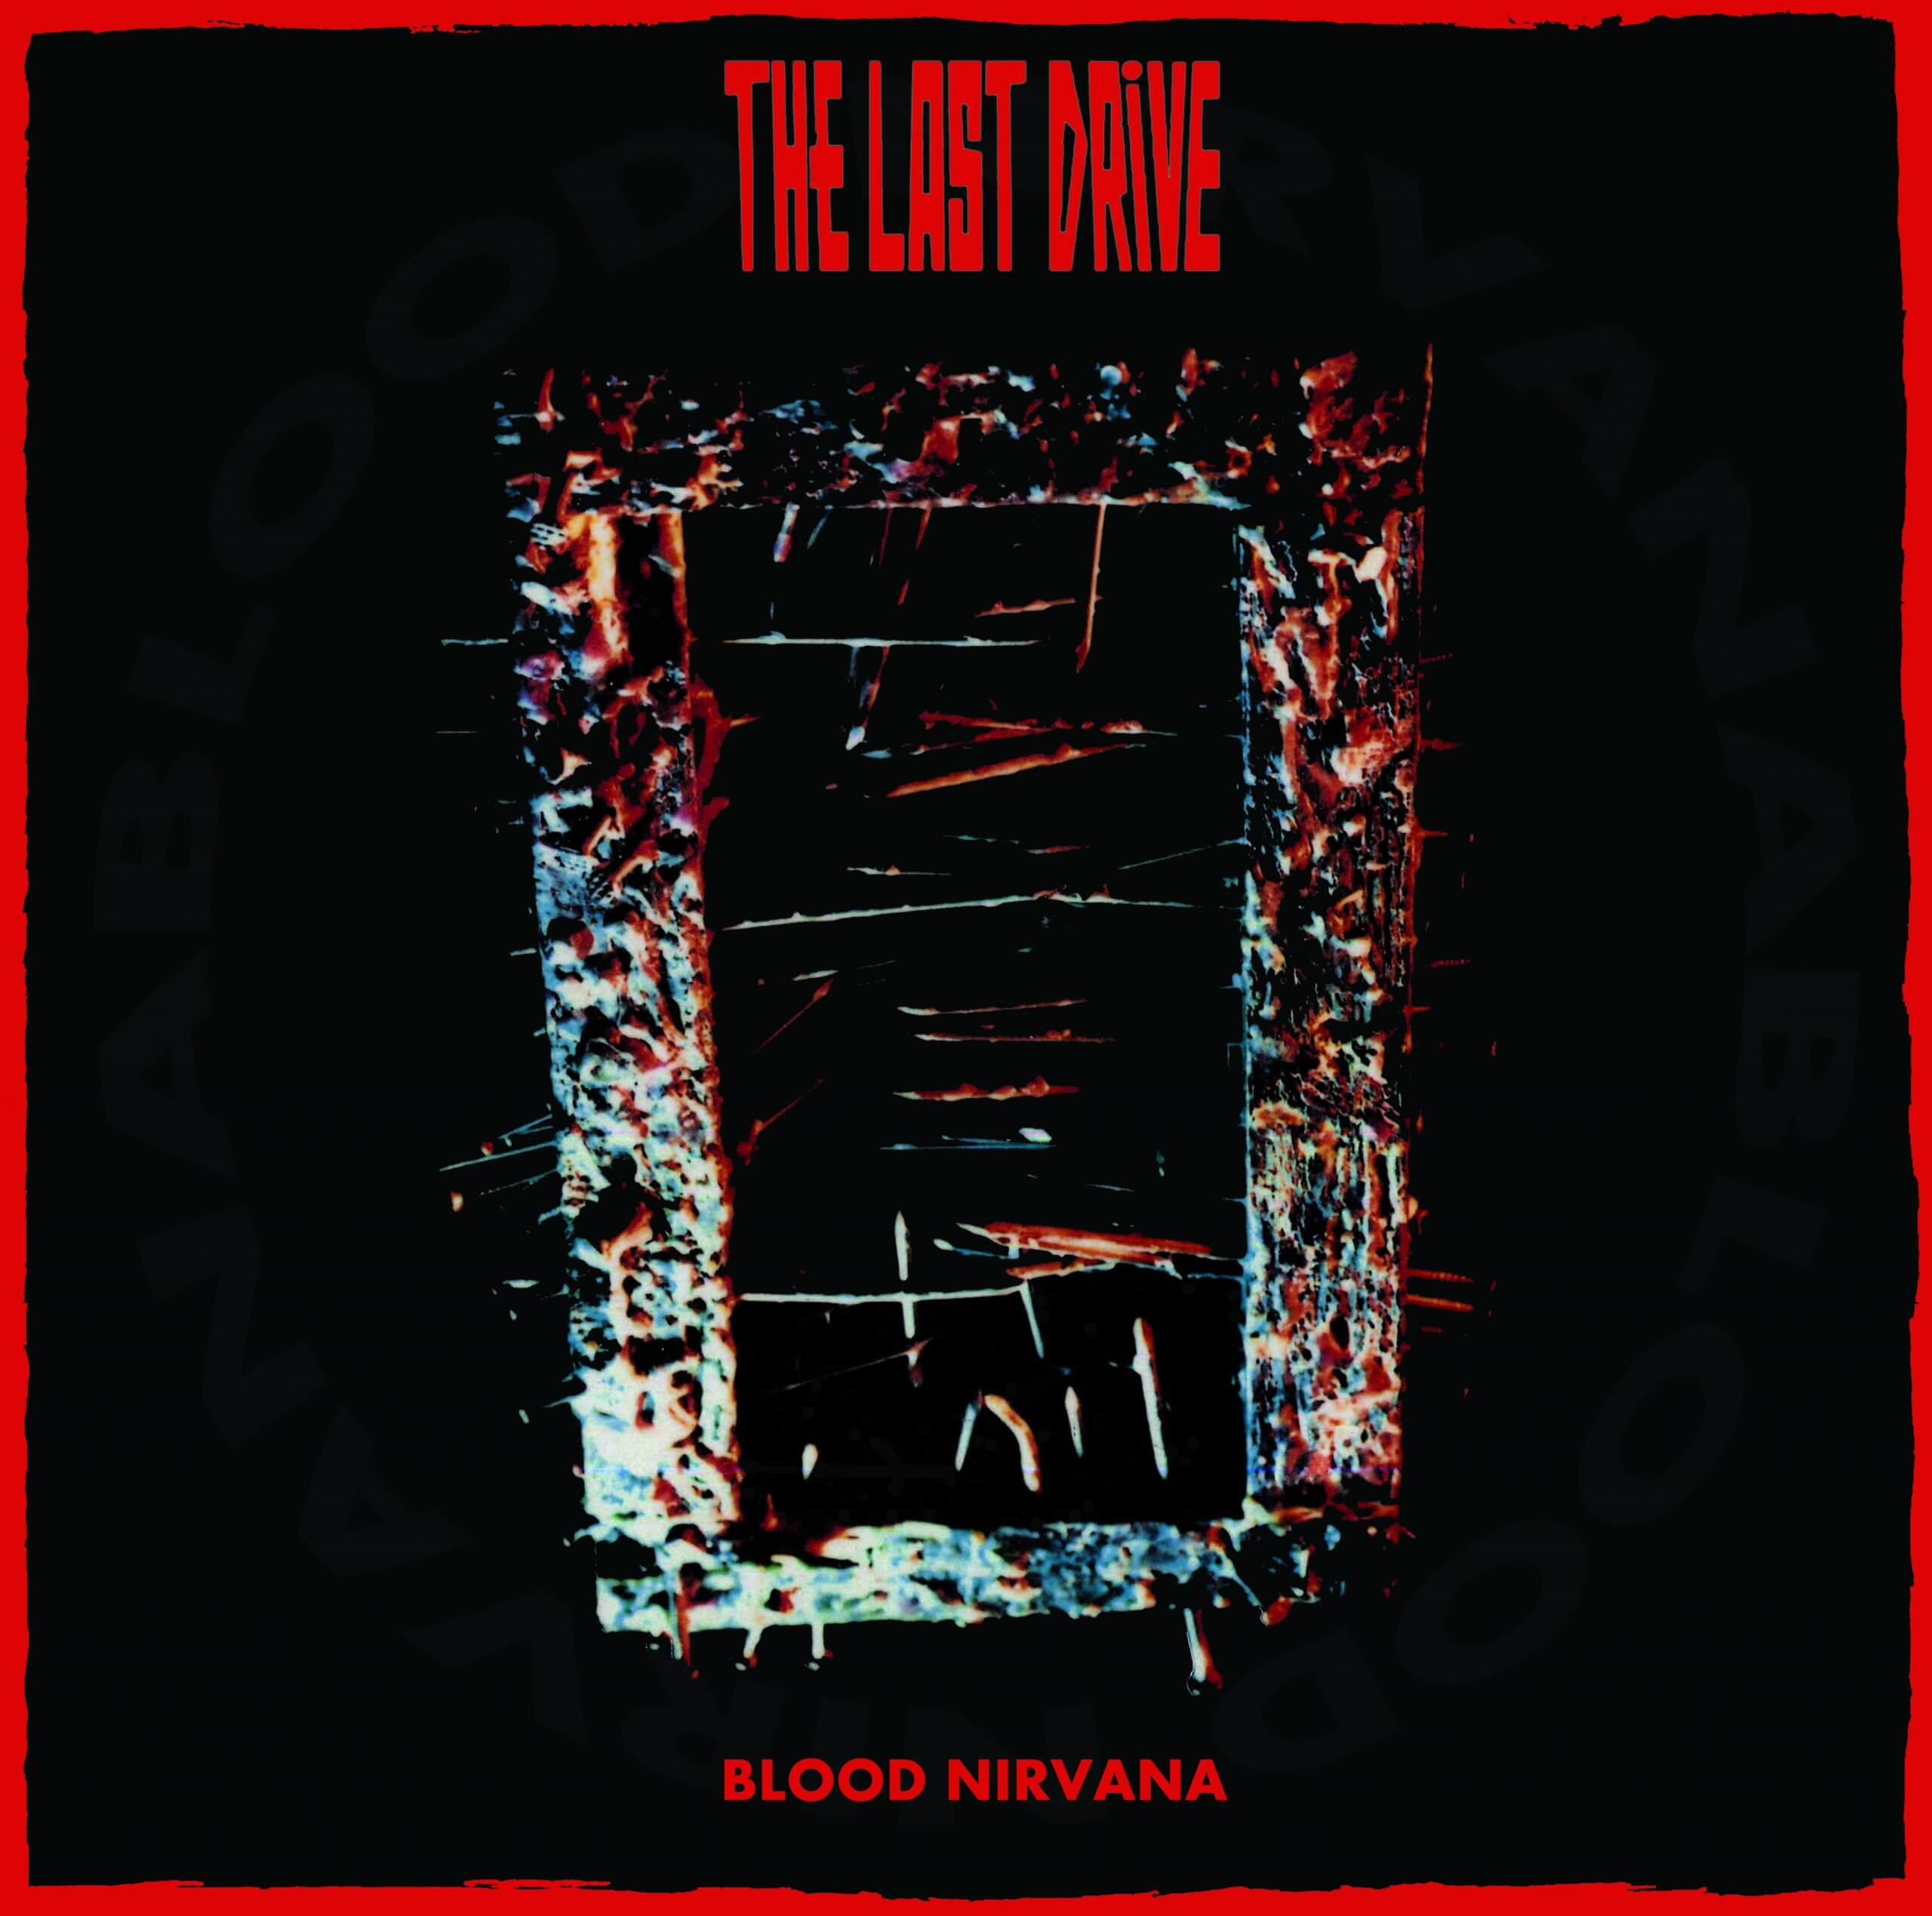 The Last Drive Blood Nirvana Labyrinth of Thoughts records